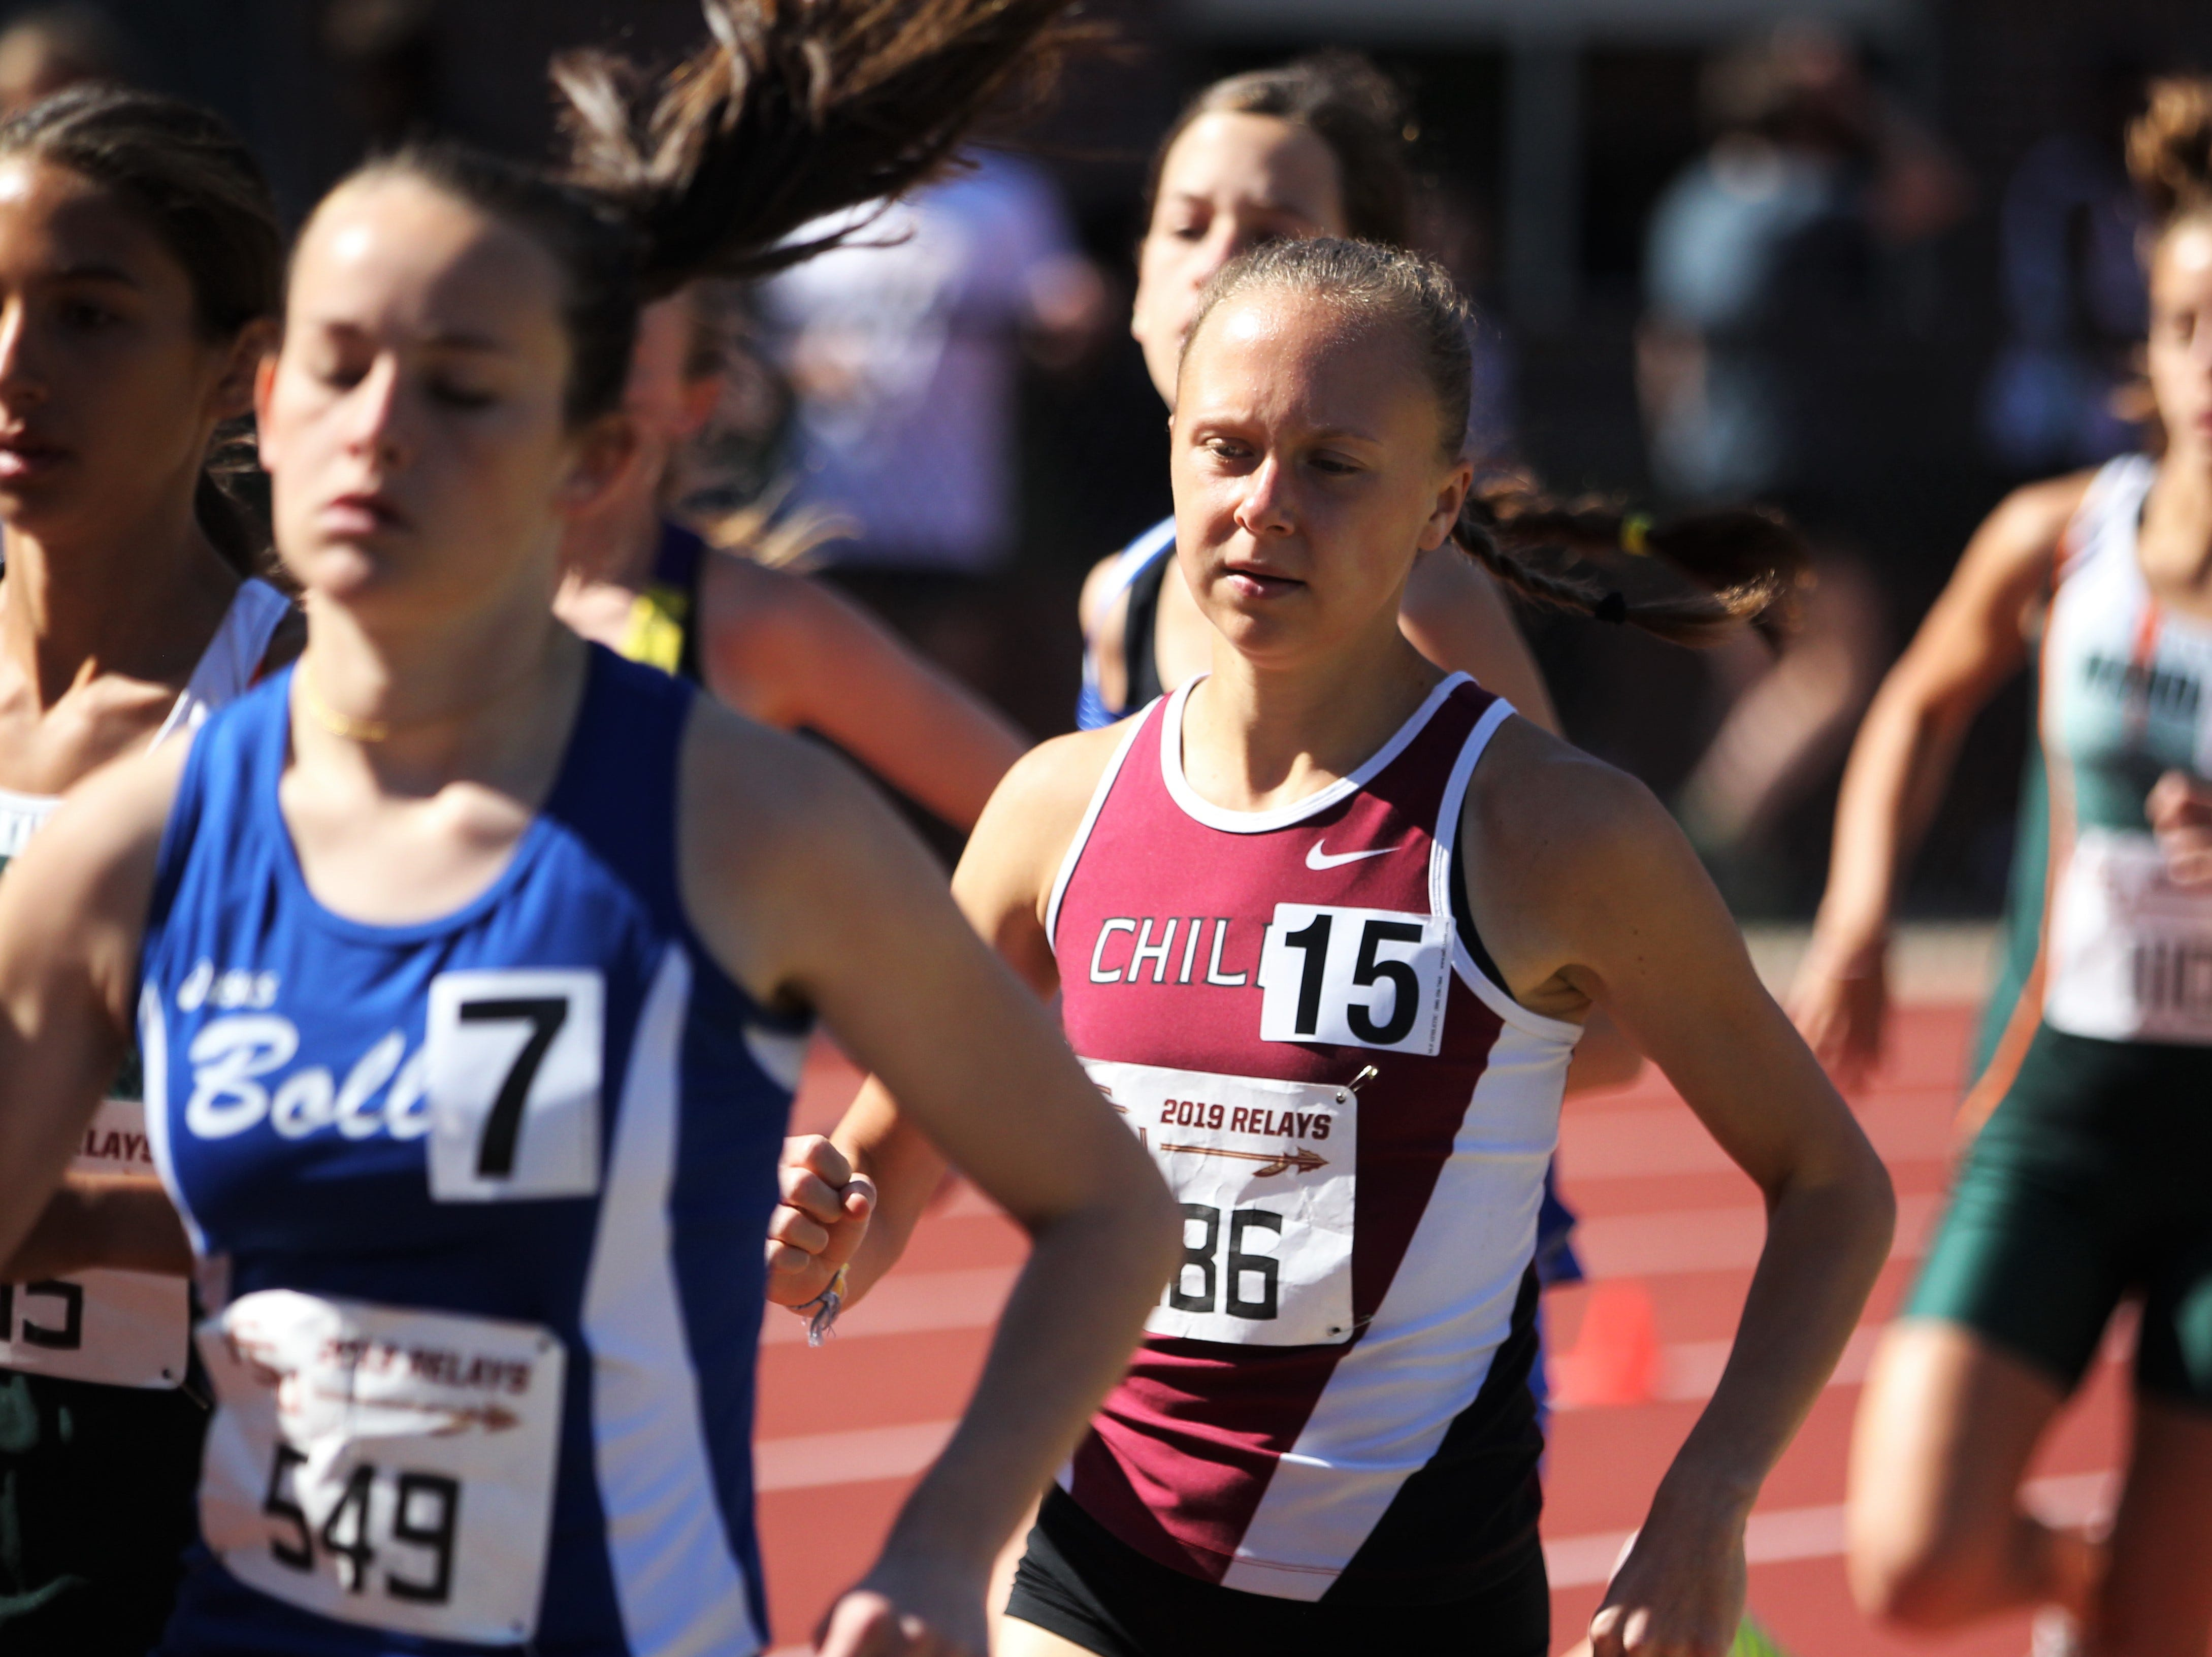 Chiles senior Abby Schrobilgen runs the 1600 during the 40th annual FSU Relays at Mike Long Track on Saturday, March 23, 2019.